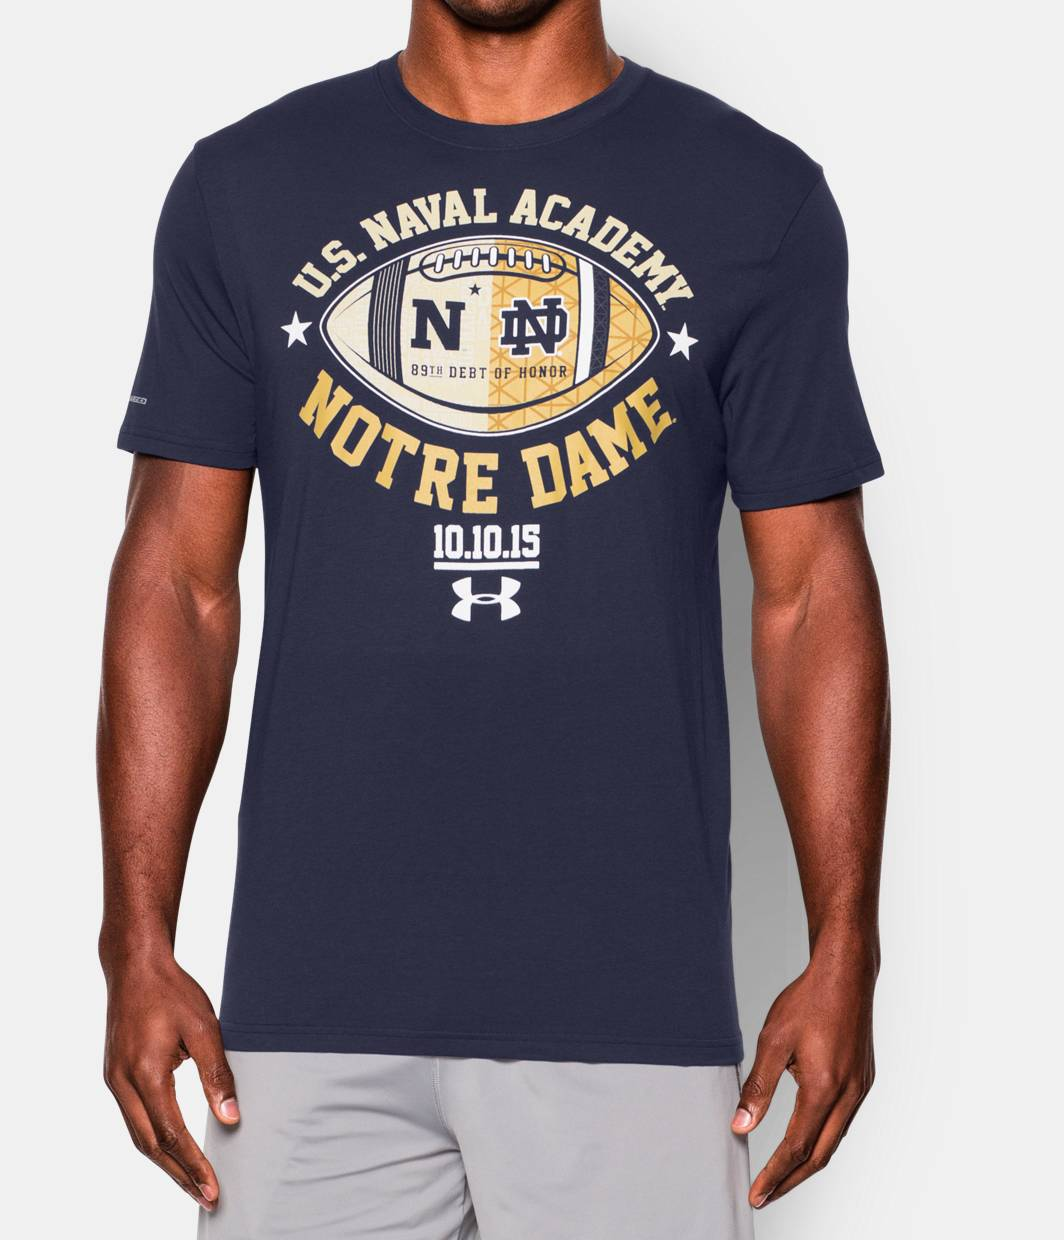 Men s notre dame vs navy t shirt under armour us for Notre dame tee shirts